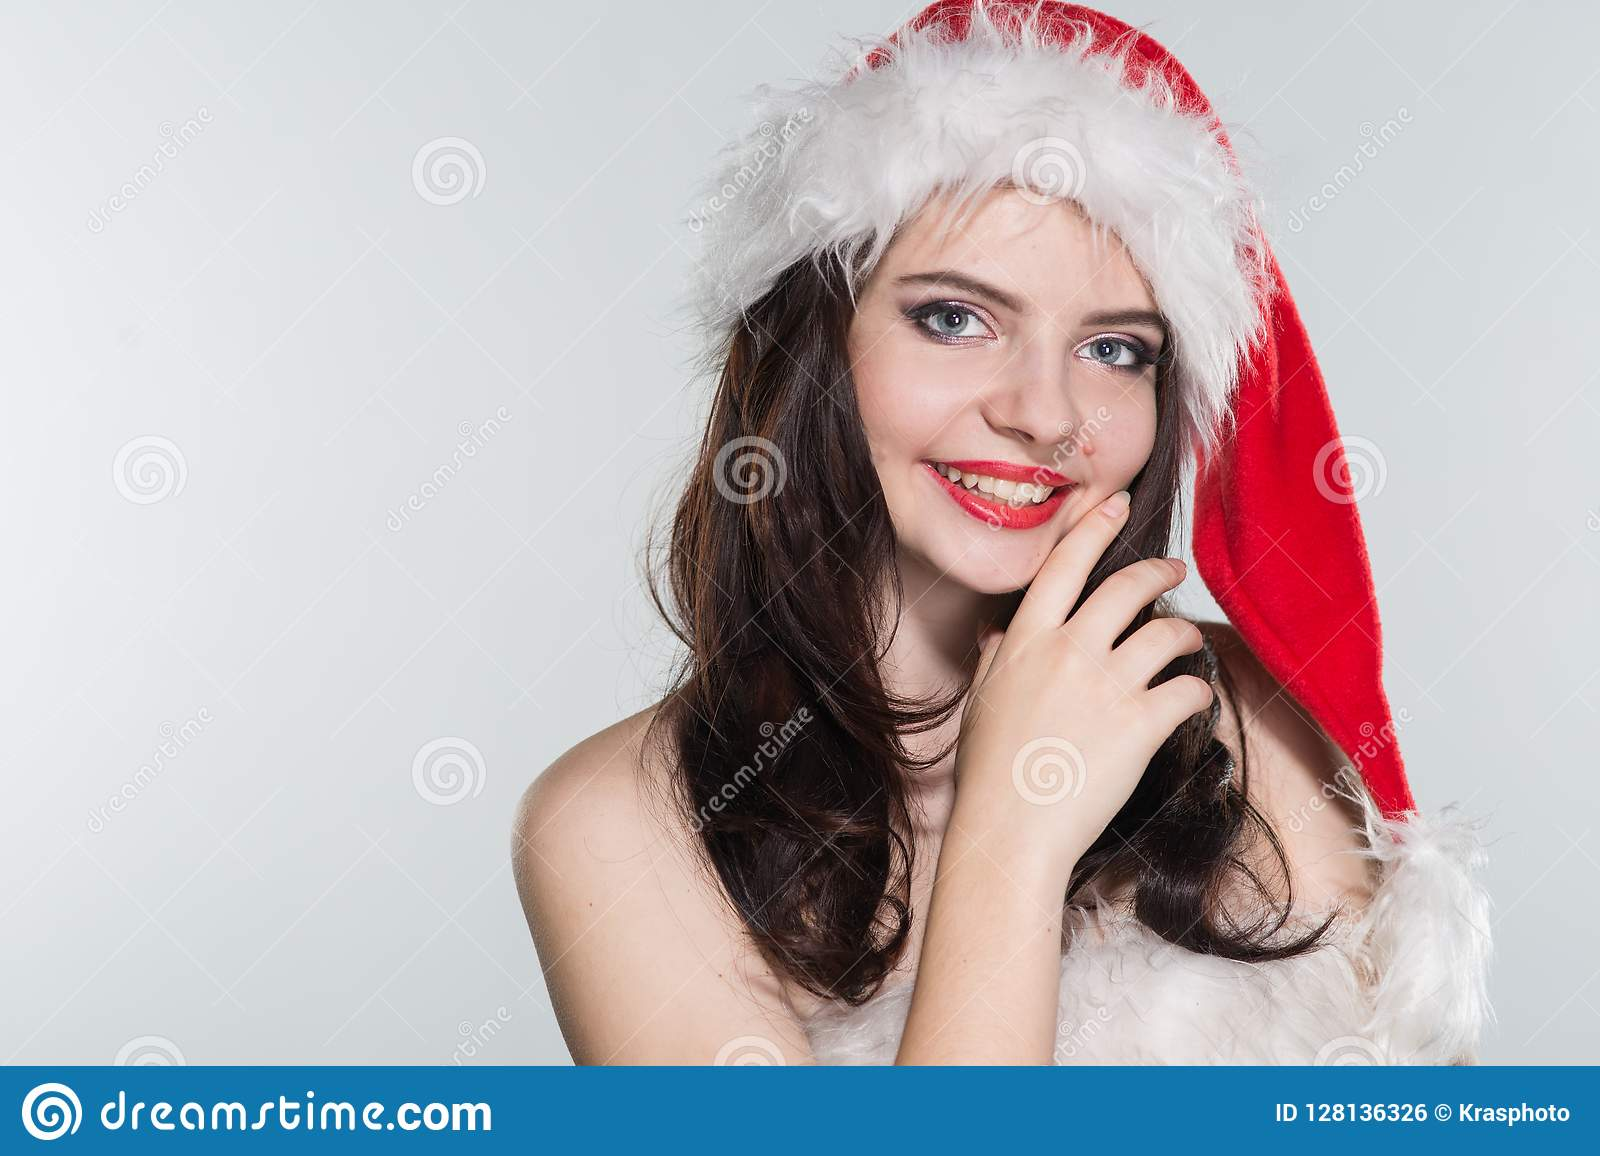 Merry Christmas Beautiful Young Woman In A Red Mrs Claus Costume